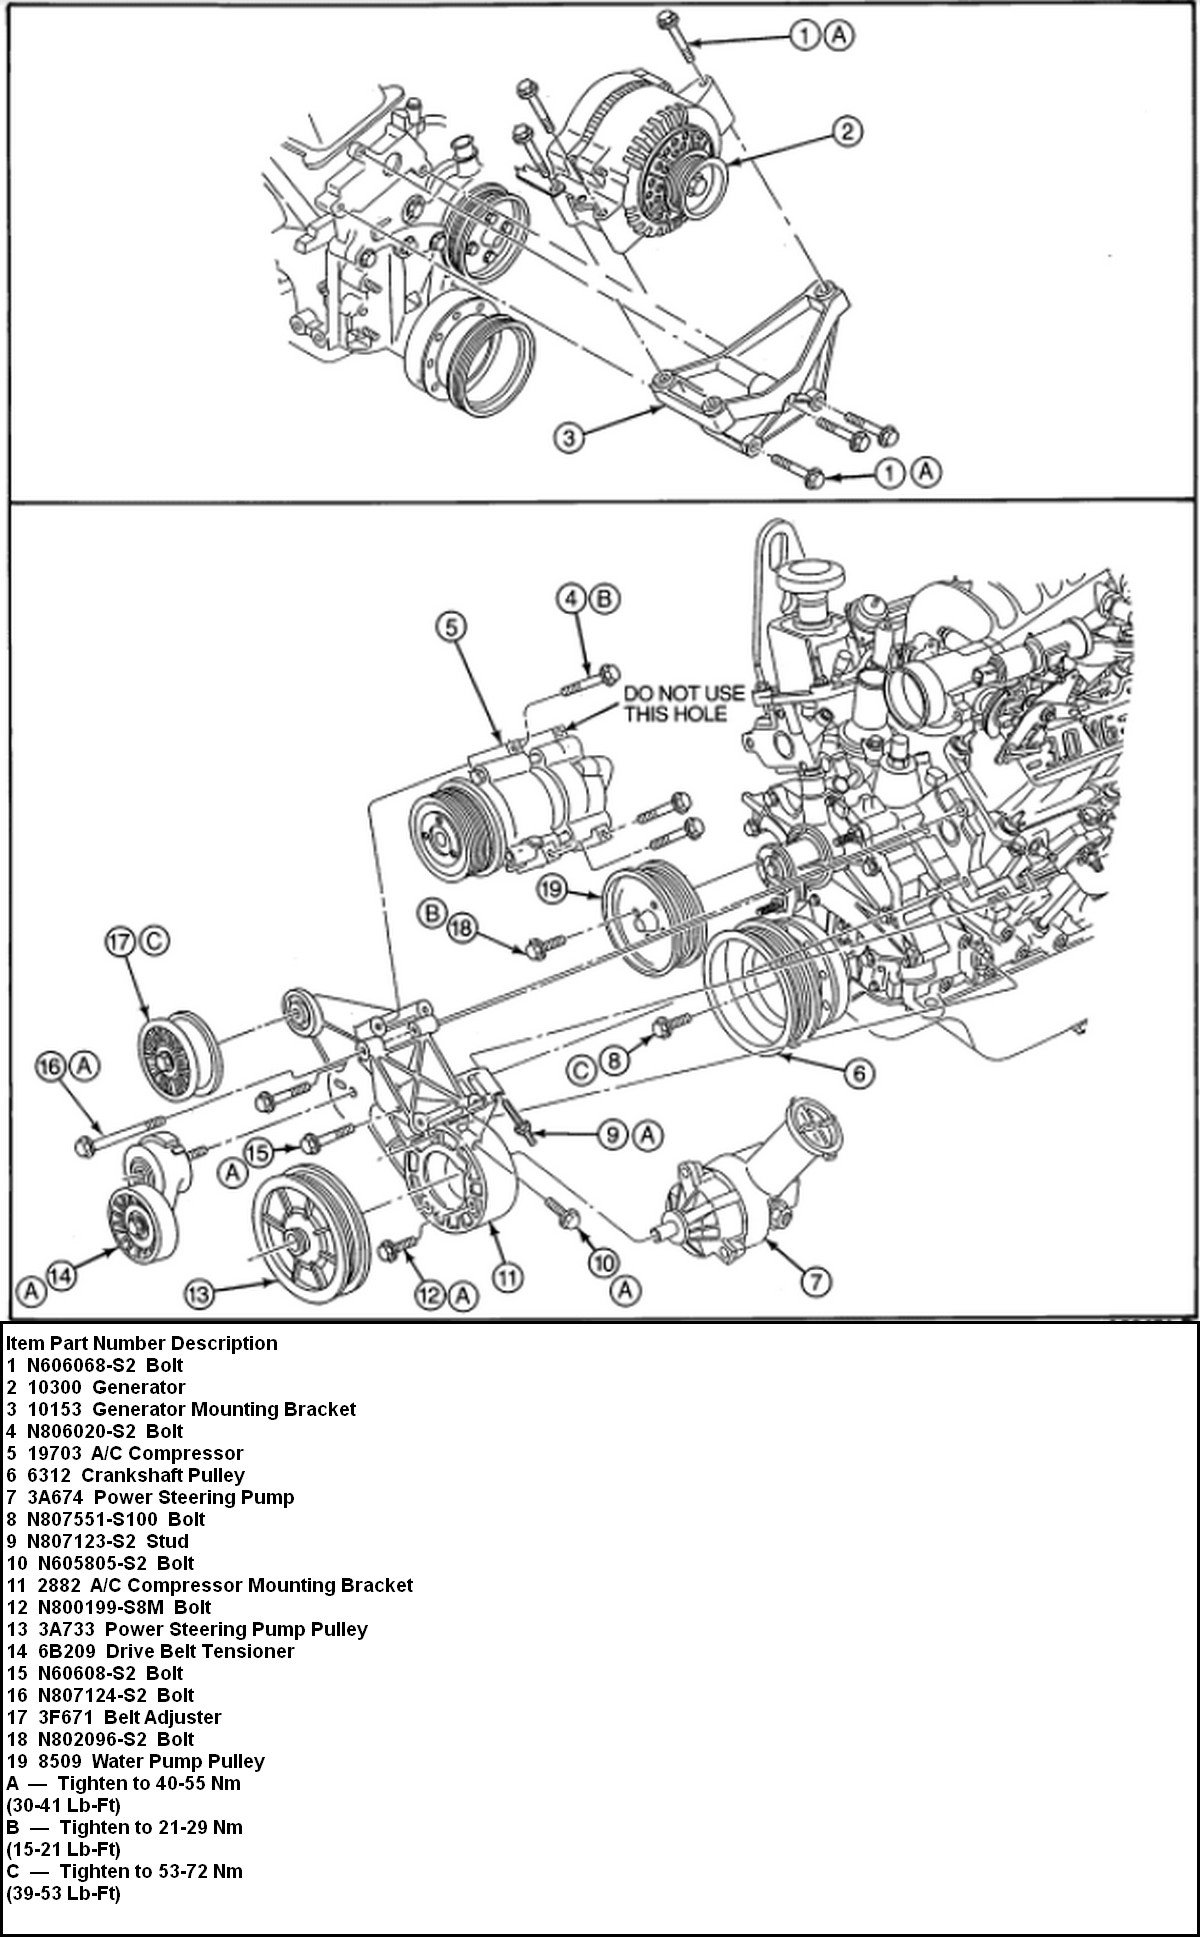 2011 Jetta Fuse Box Diagram moreover Simple Crankshaft Diagram likewise 059145174A as well Volkswagen Touareg 3 0 2003 Specs And Images together with 2nefx Cooling Temp Sensor Located 99 Vw Beetle. on touareg diesel engine diagram html